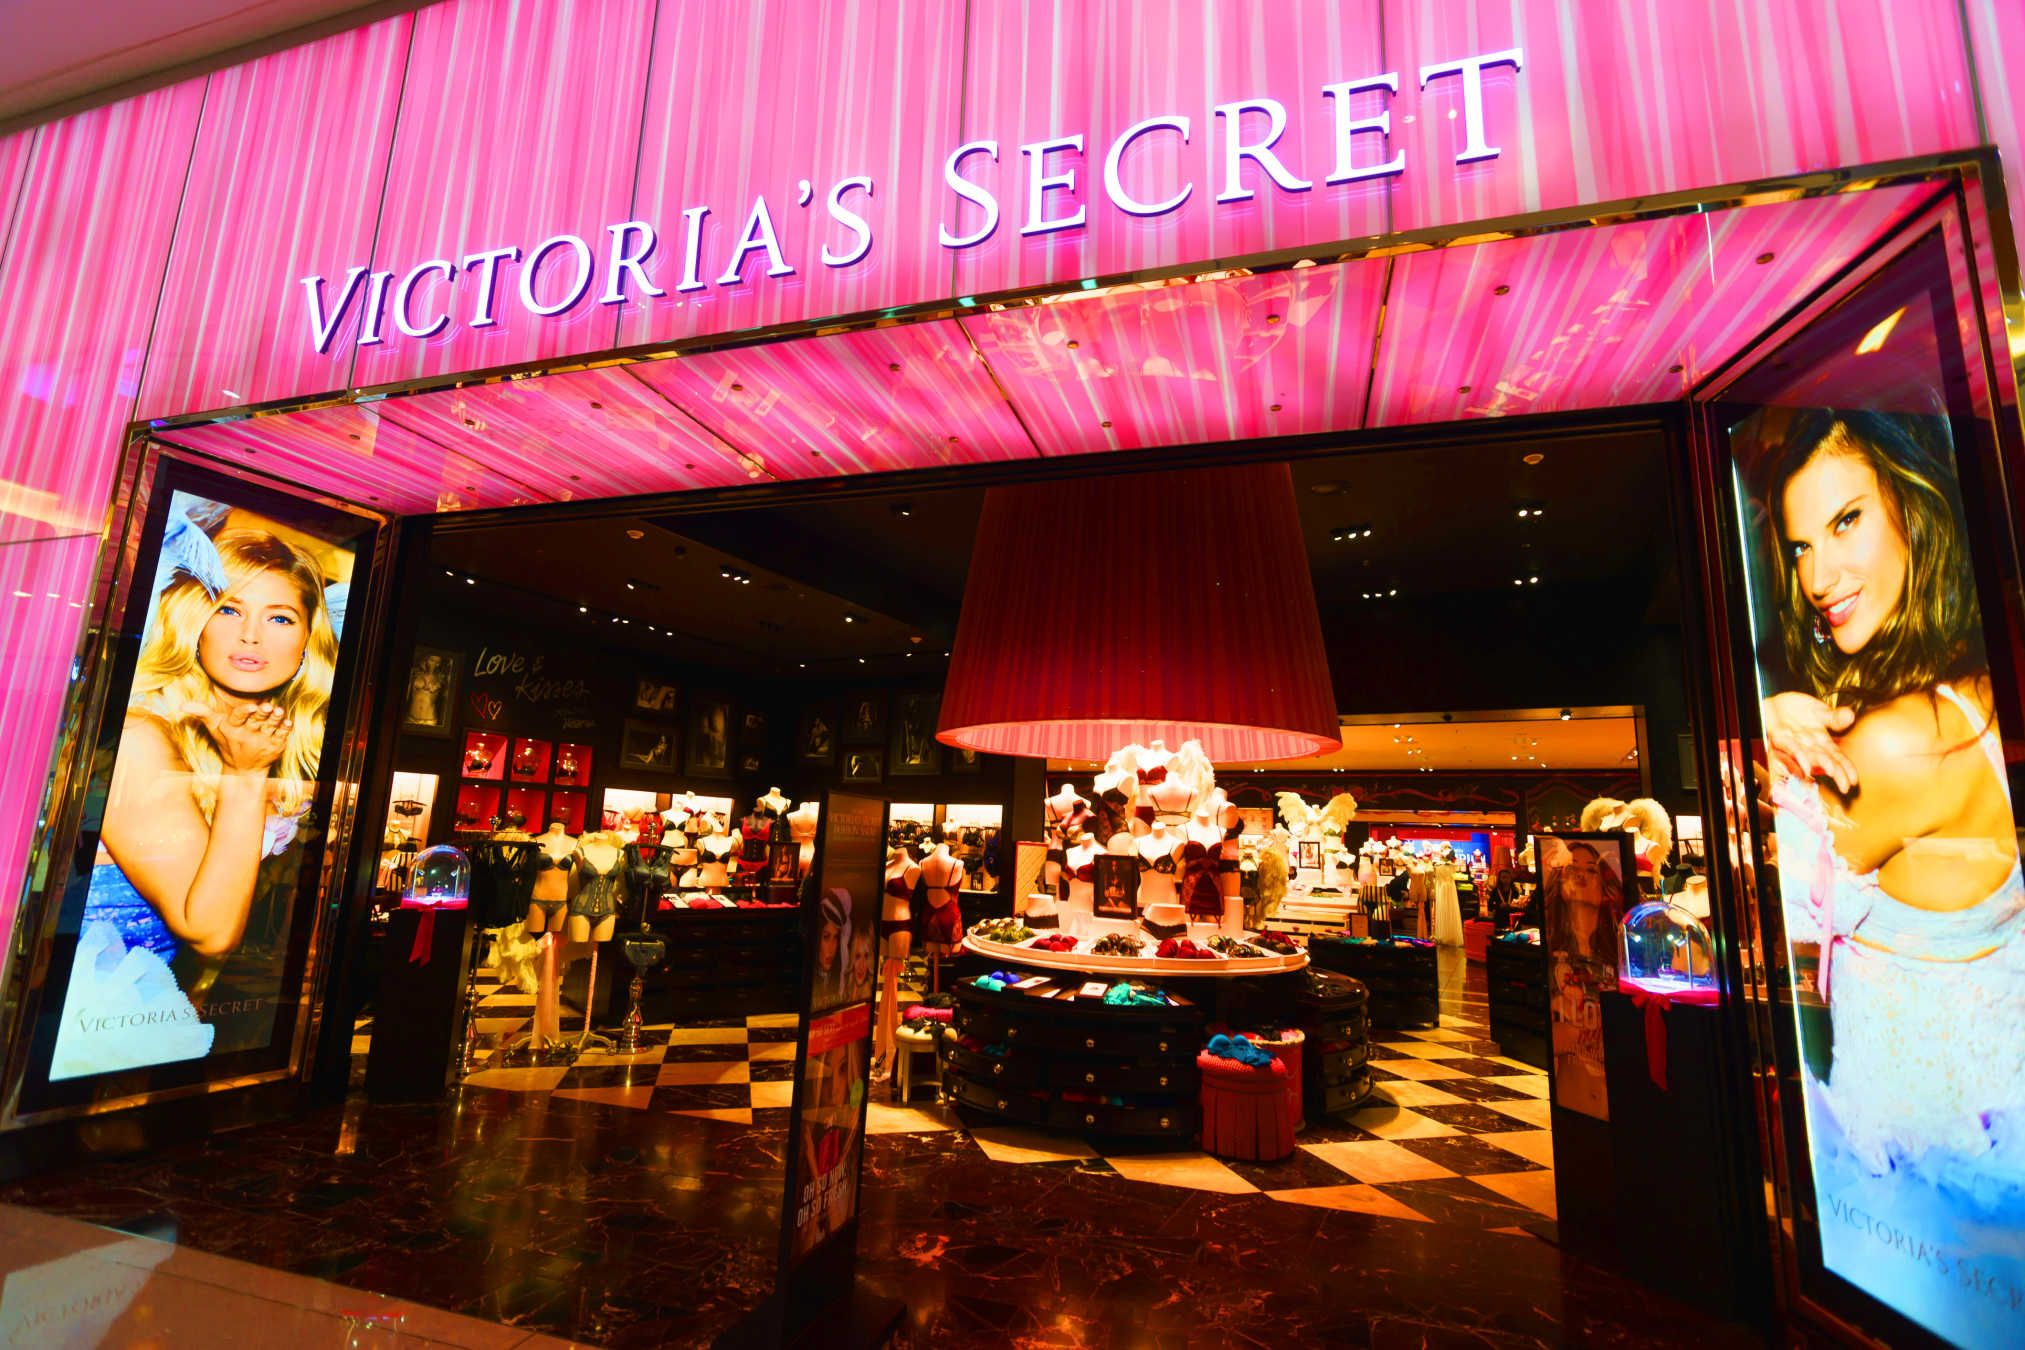 7 confessions of a former victoria's secret employee | pinterest